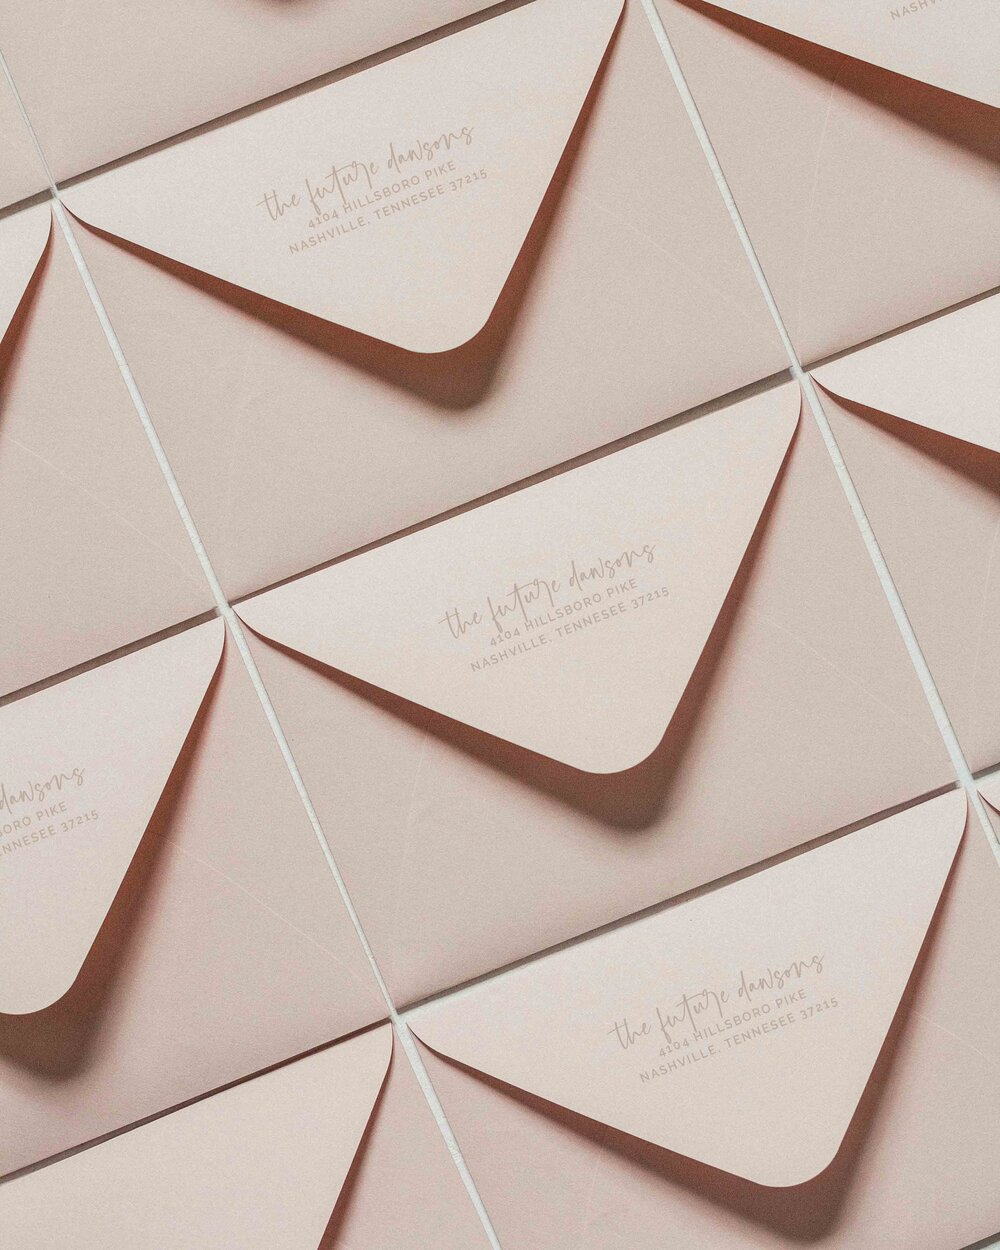 When it comes to the wedding details we love the most, printed stationery definitely takes the cake for us! What's not to love about opening up an elegant invitation in the mail? Here are 5 reasons to fall in love with print (in case you haven't already)!